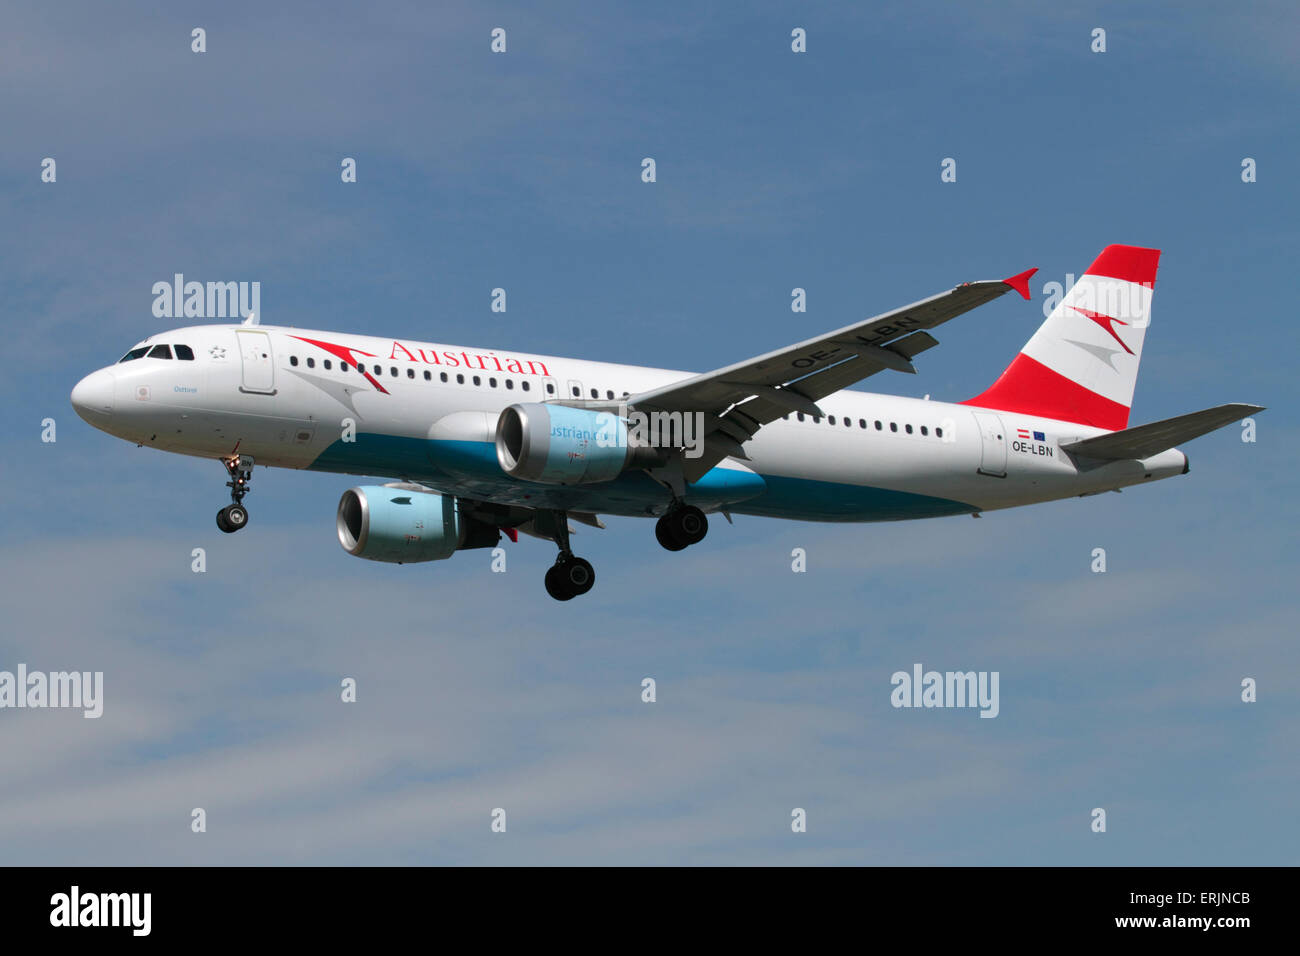 Austrian Airlines Airbus A320 airliner on approach. Civil aviation and commercial air travel. - Stock Image